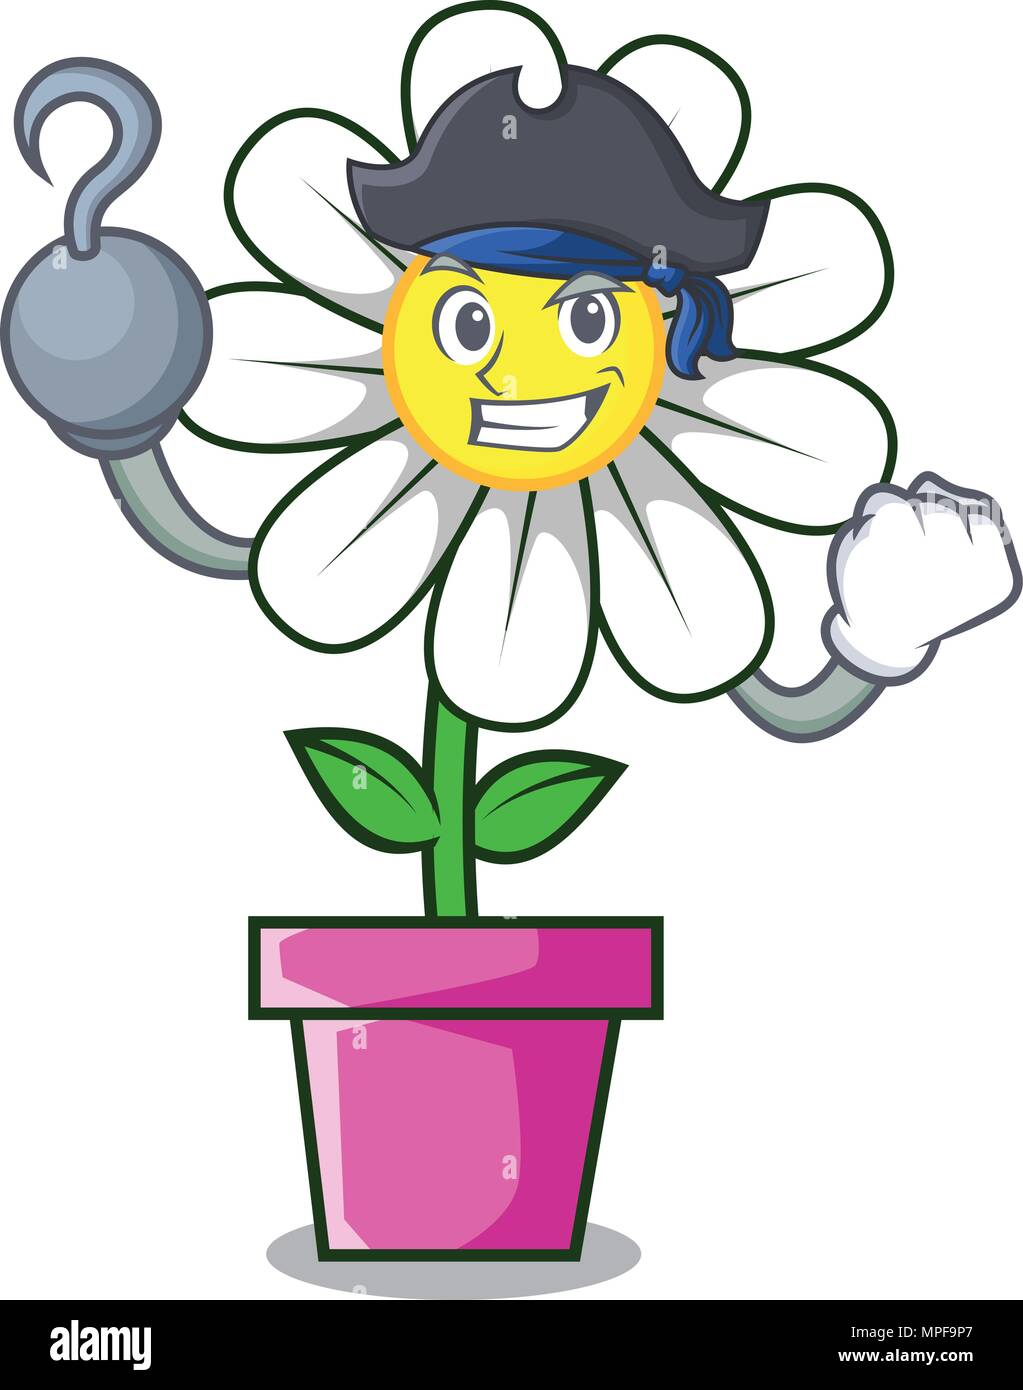 Pirate Daisy Flower Character Cartoon Stock Vector Art